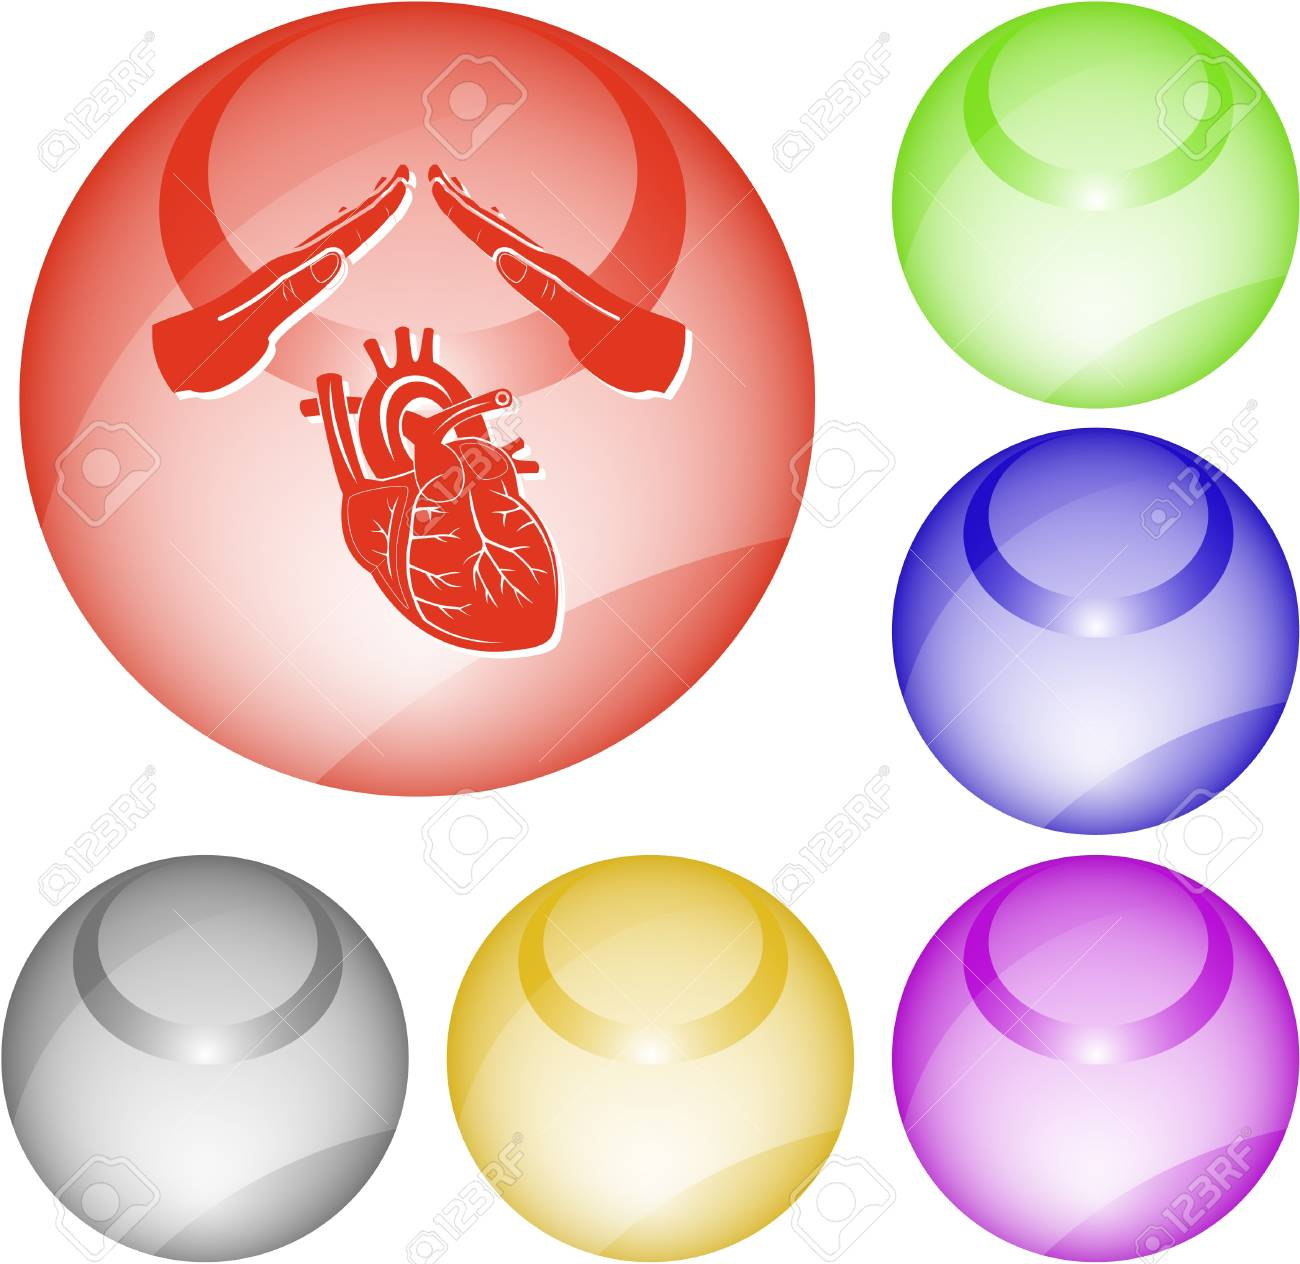 Heart protect. Vector interface element. Stock Photo - 9506396